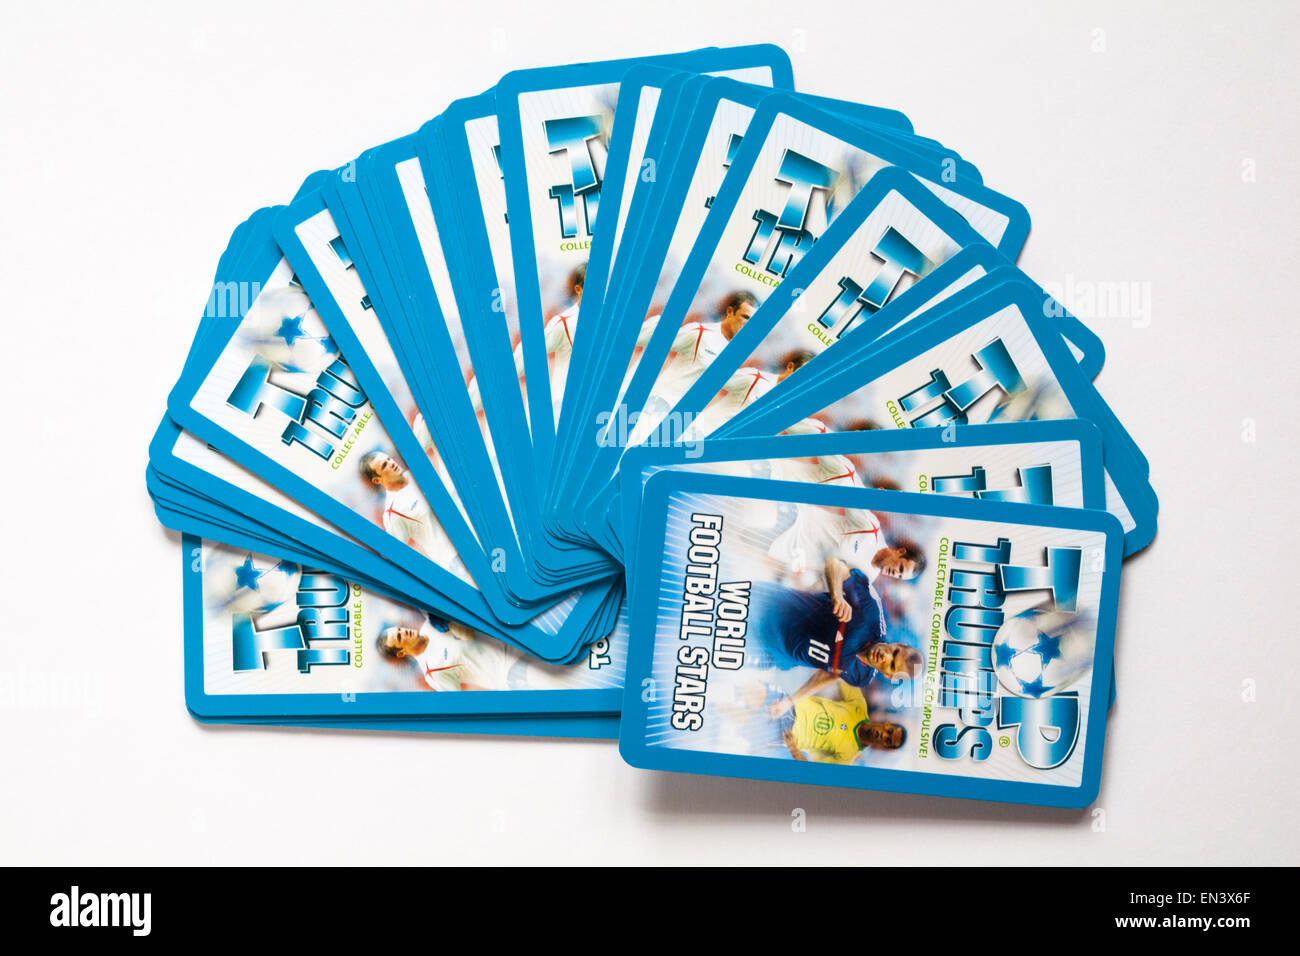 Top Trumps cards World Football Stars isolated on white background - Stock Image